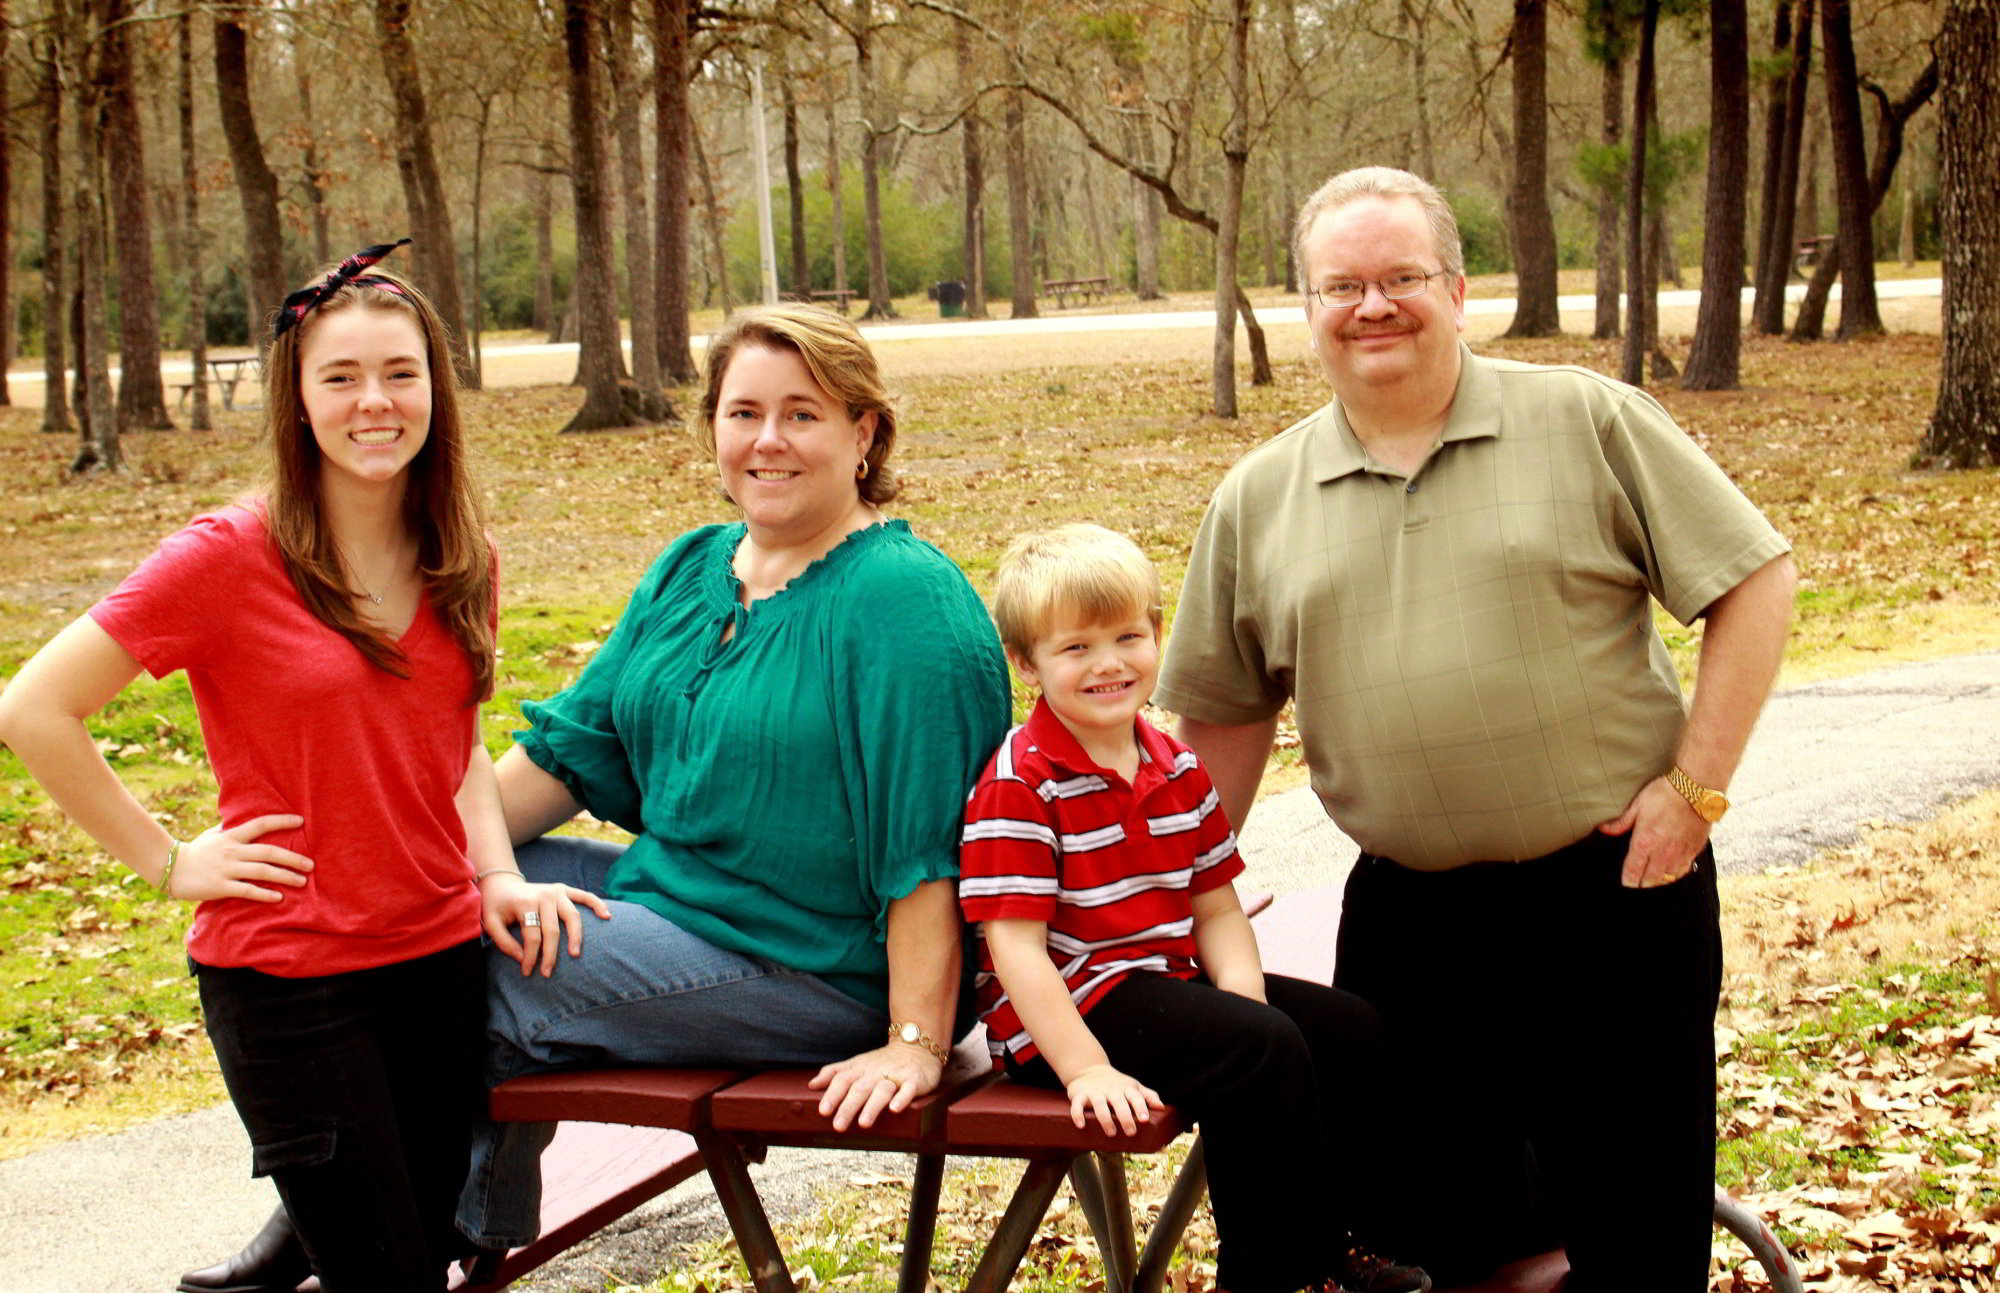 About ancestry genealogy and focused family research. Meet Paul Hoesl.